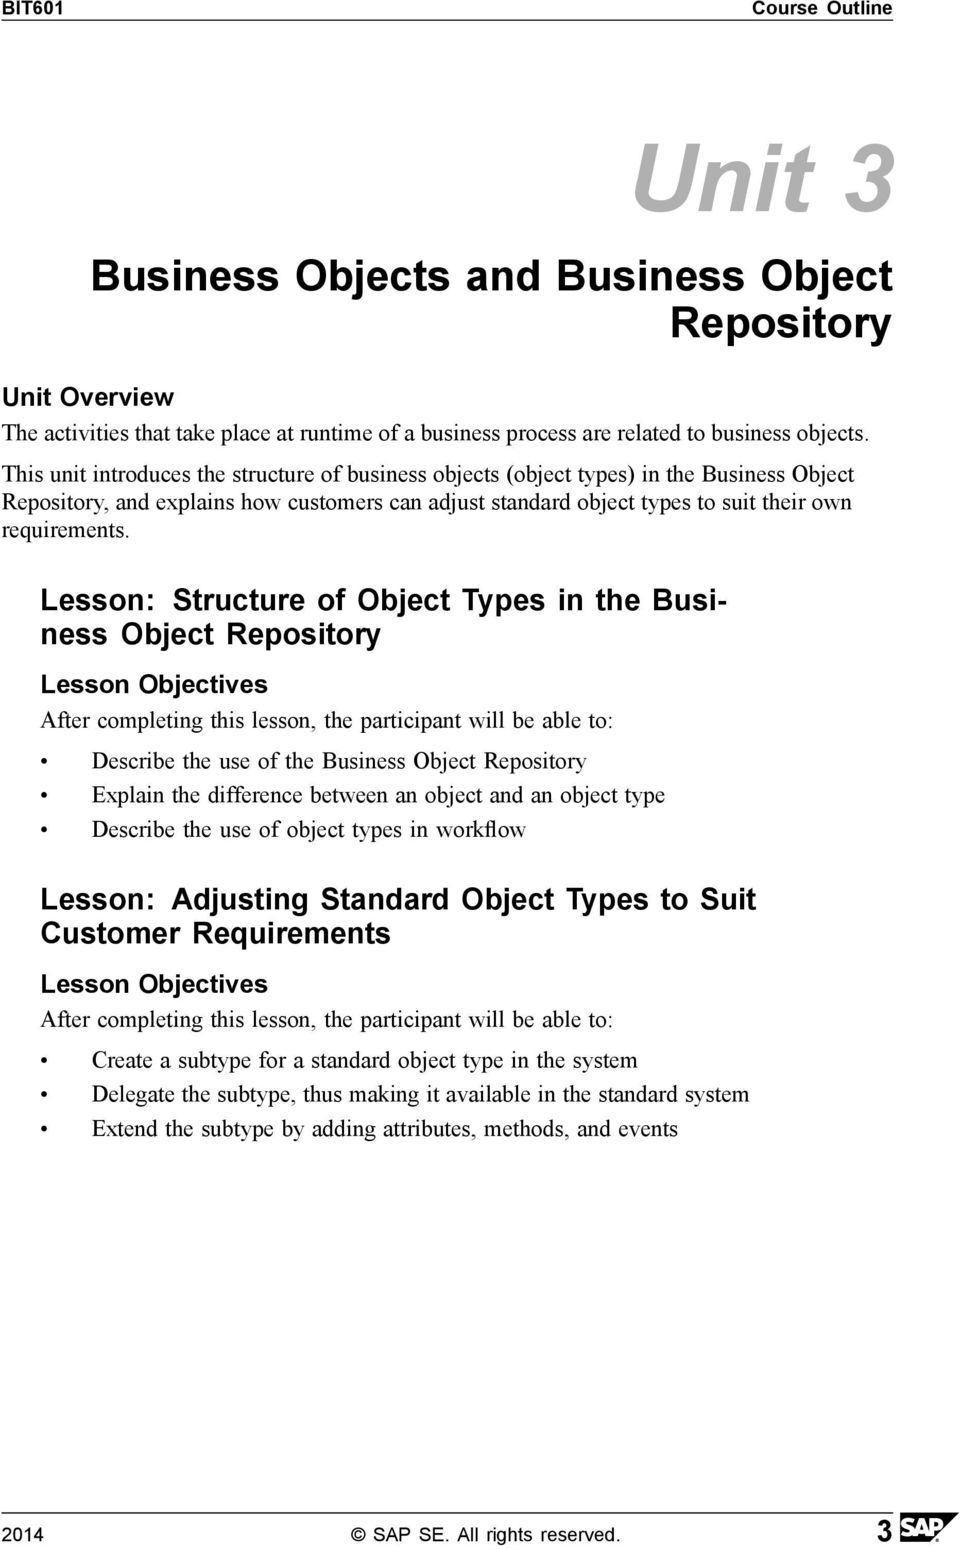 Lesson: Structure of Object Types in the Business Object Repository Describe the use of the Business Object Repository Explain the difference between an object and an object type Describe the use of